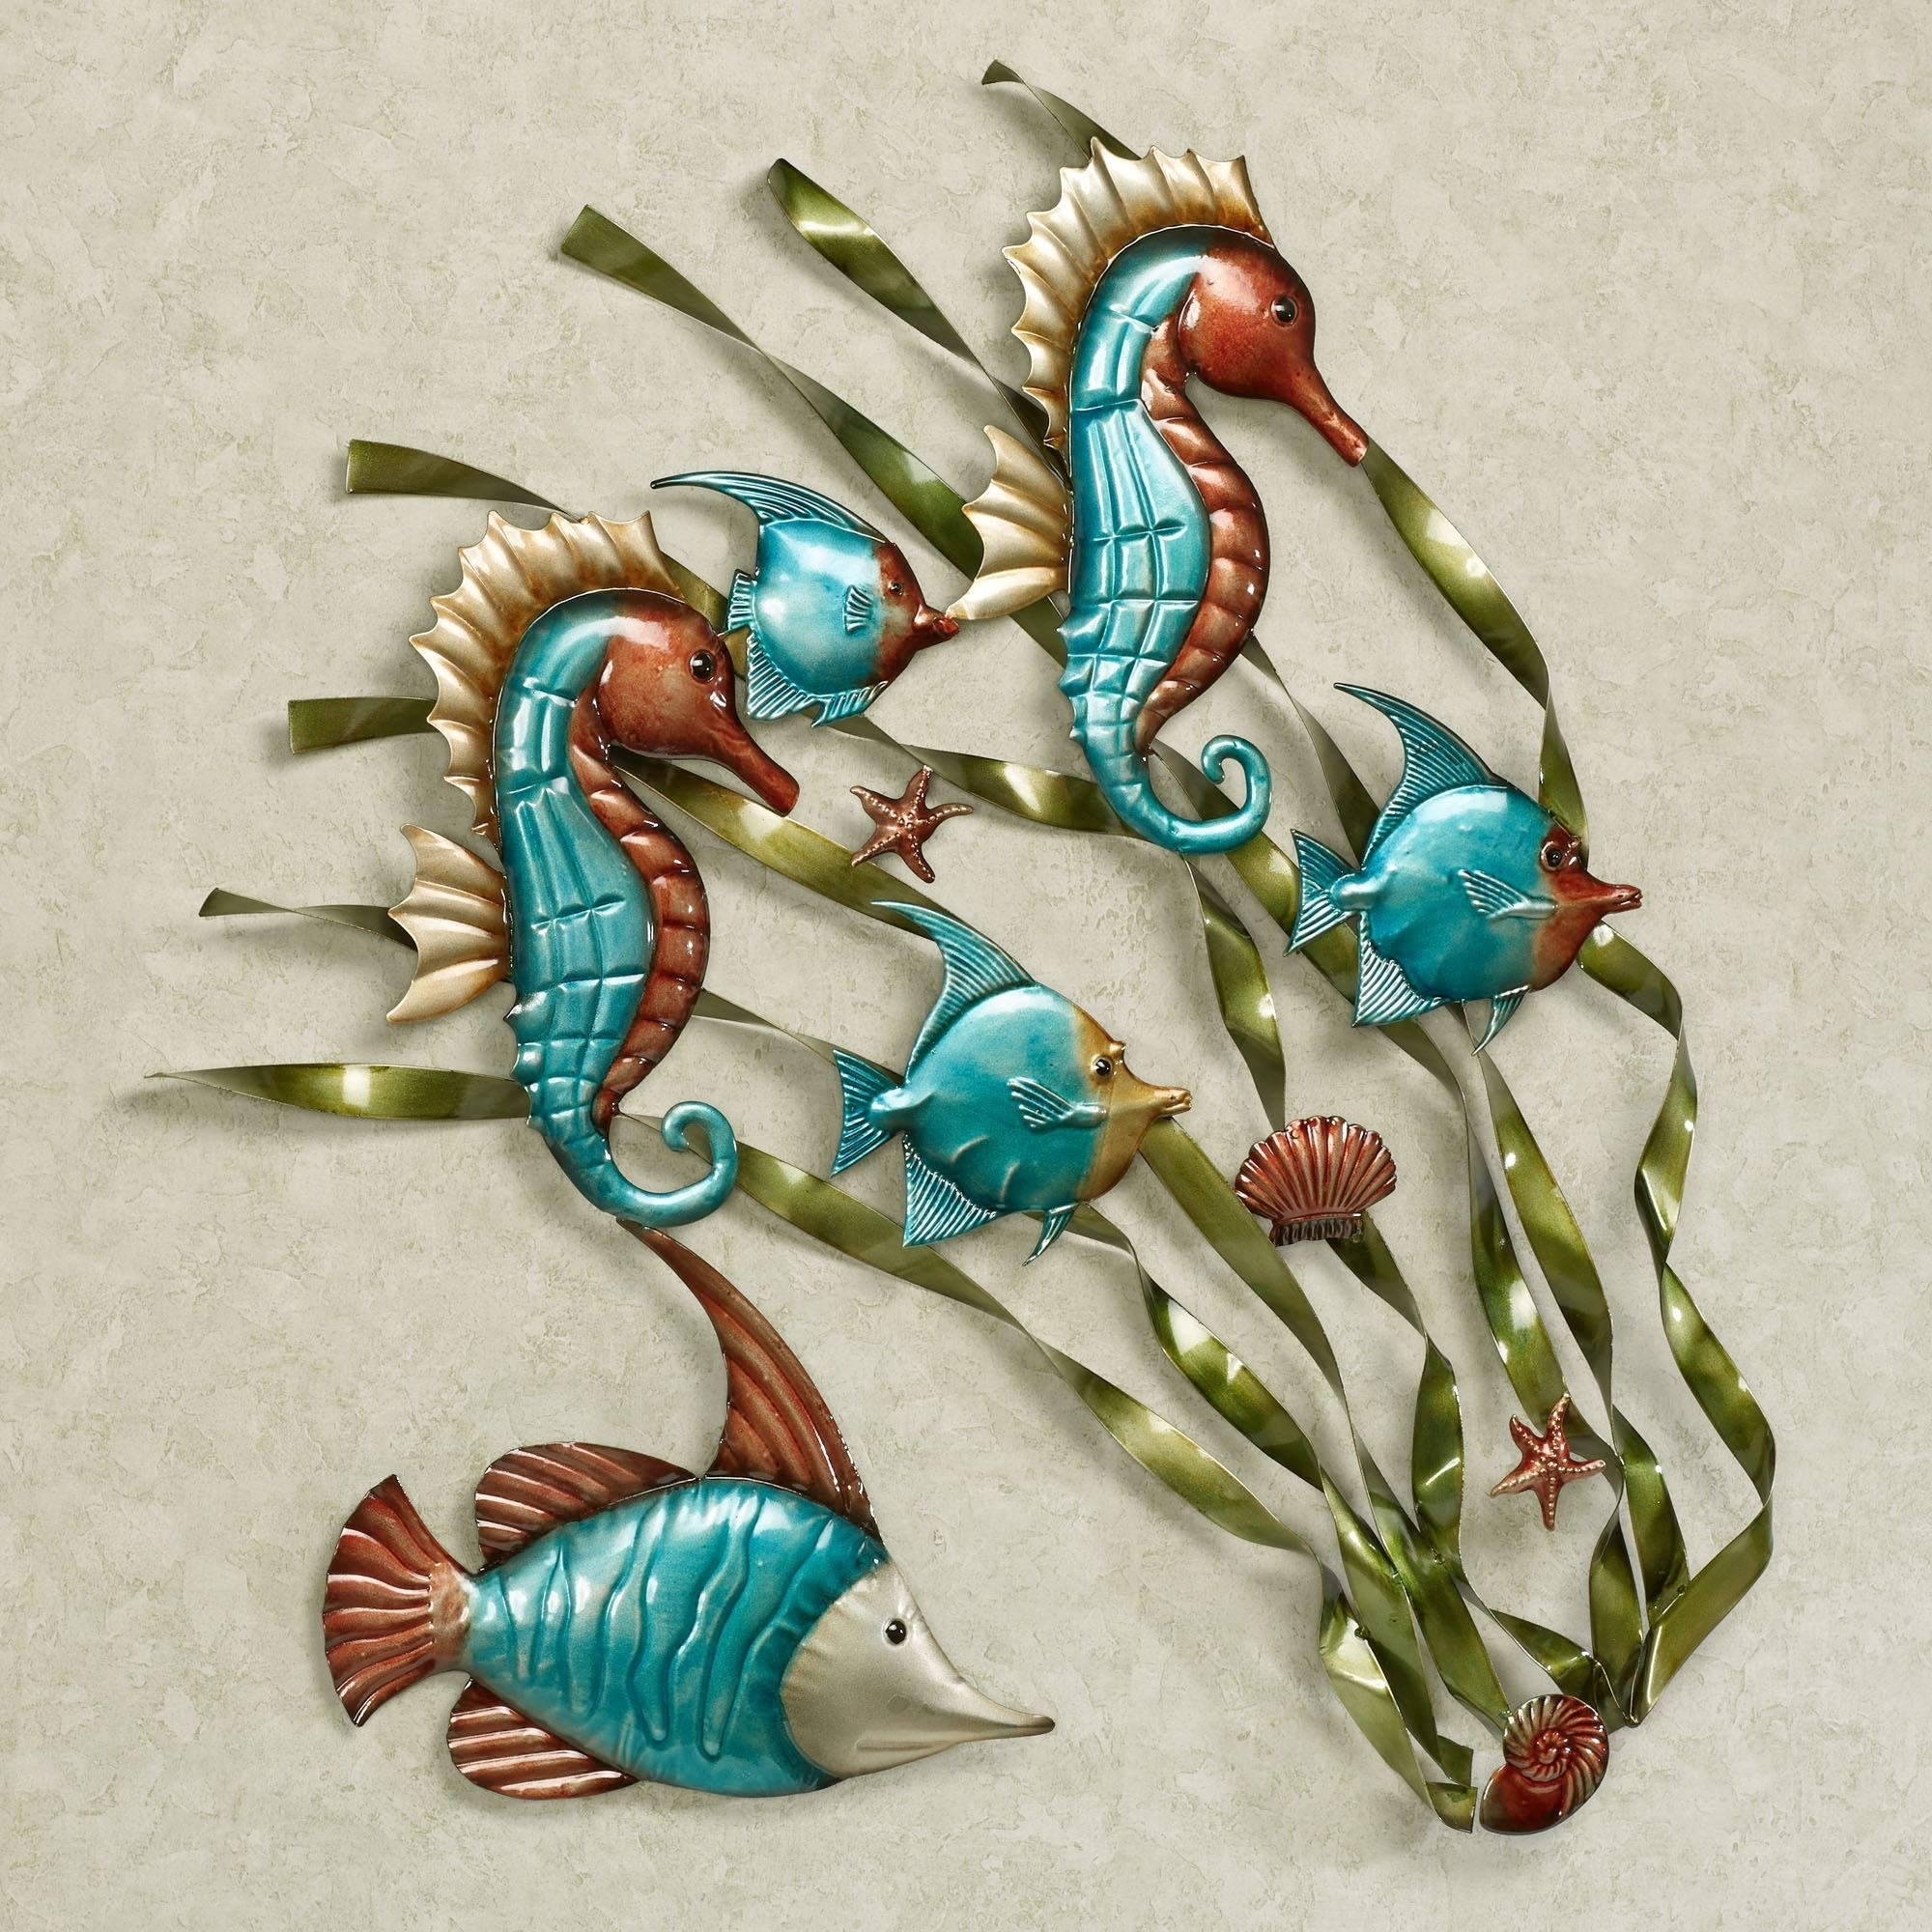 Seaside Metal Wall Art Regarding Most Up To Date 15 Inspirations Of Seaside Metal Wall Art (View 11 of 15)